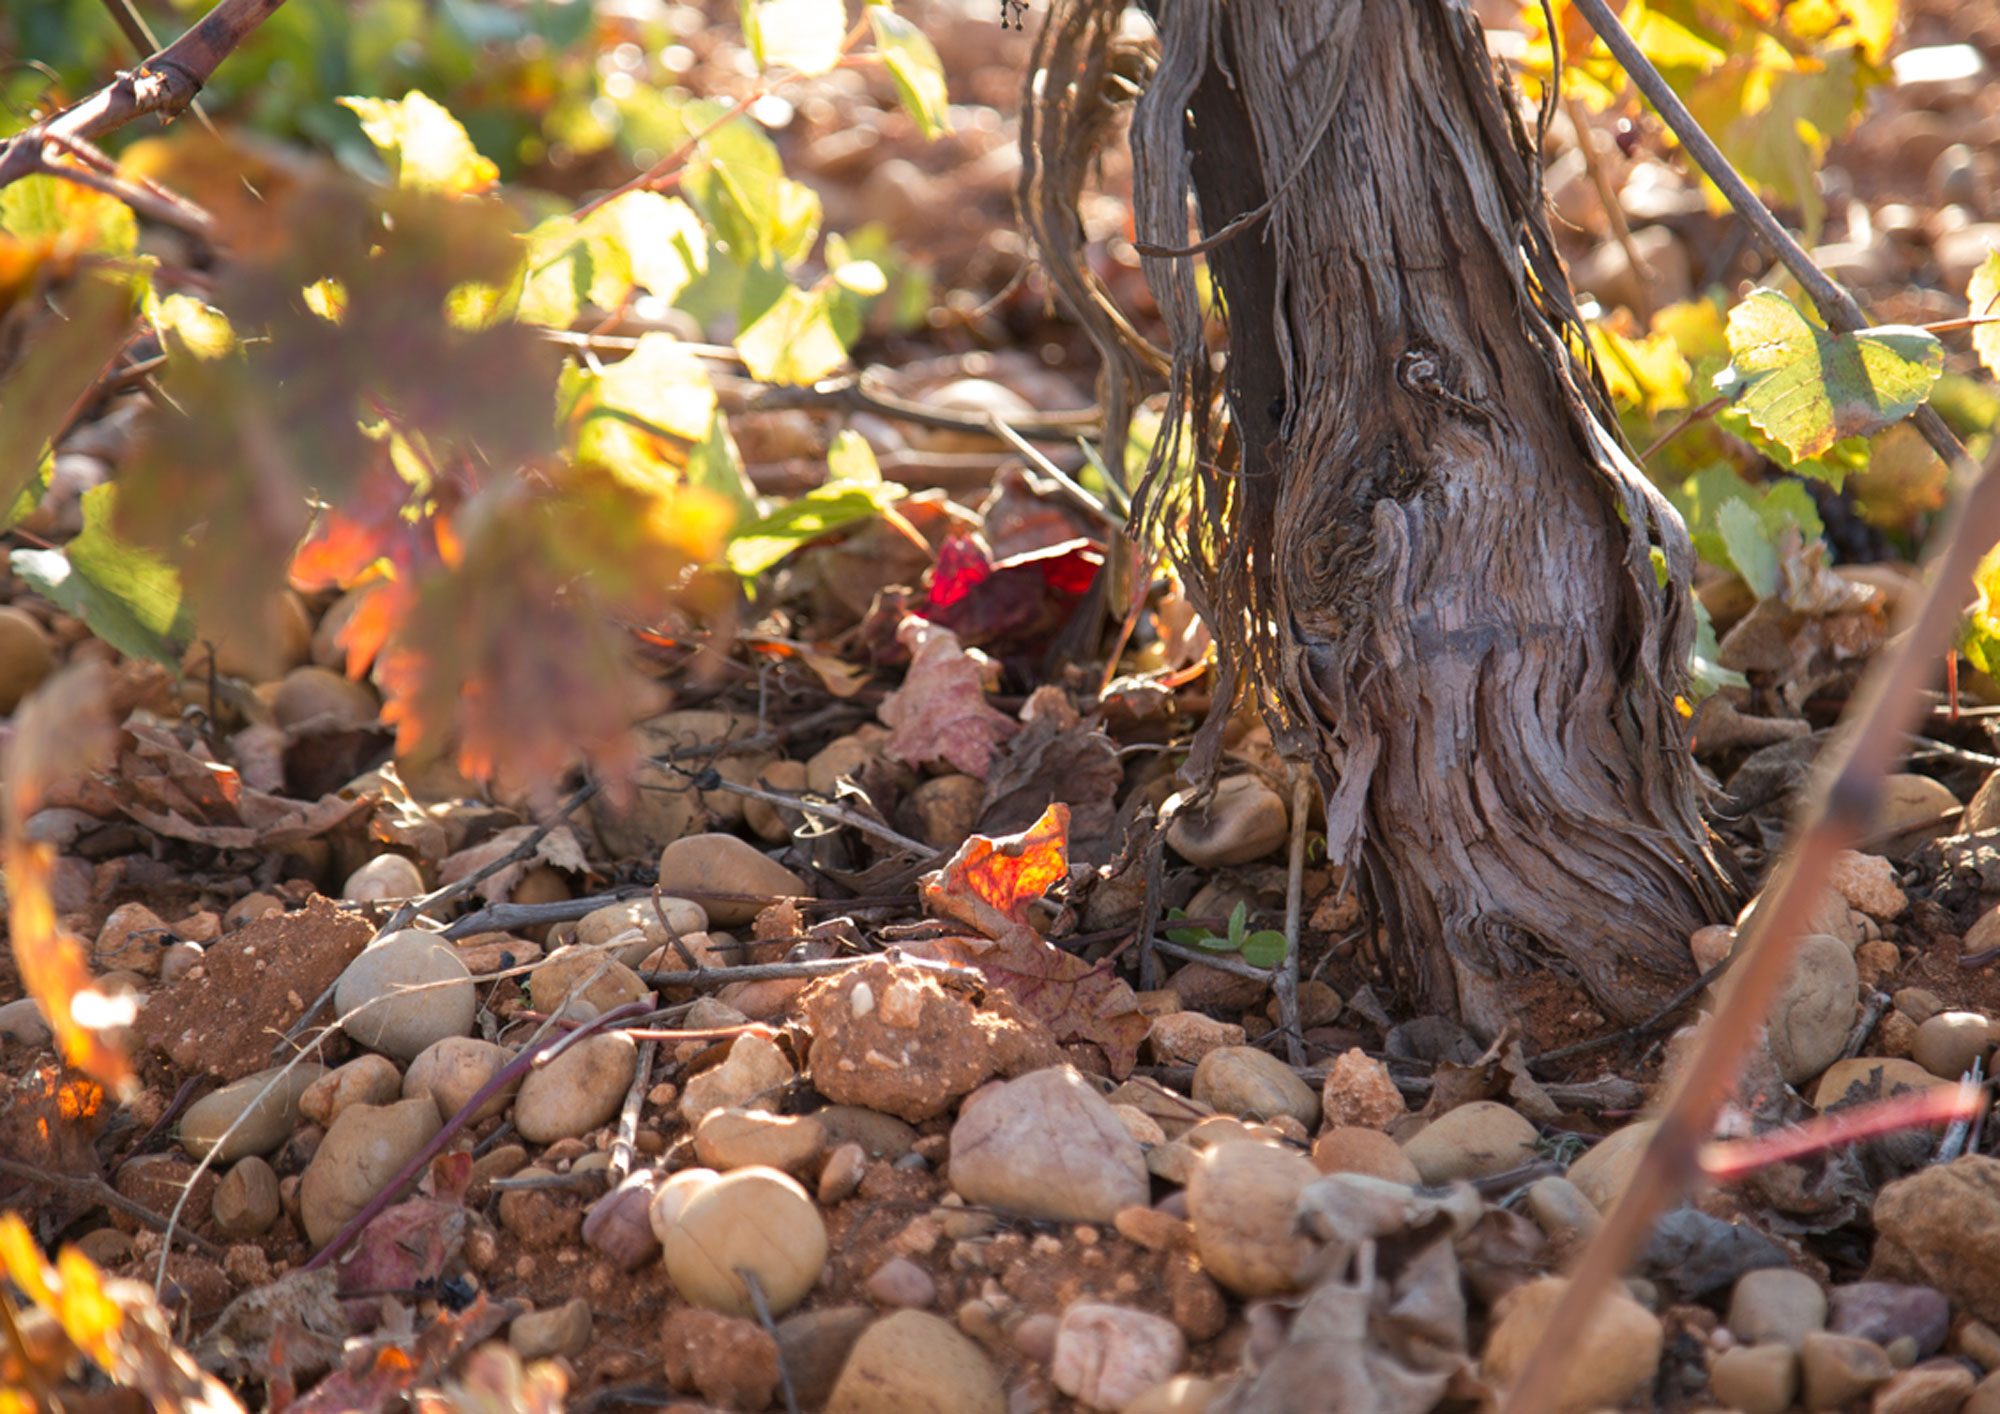 VITICULTURE ROOTED IN THE VALUES OF THE SOIL